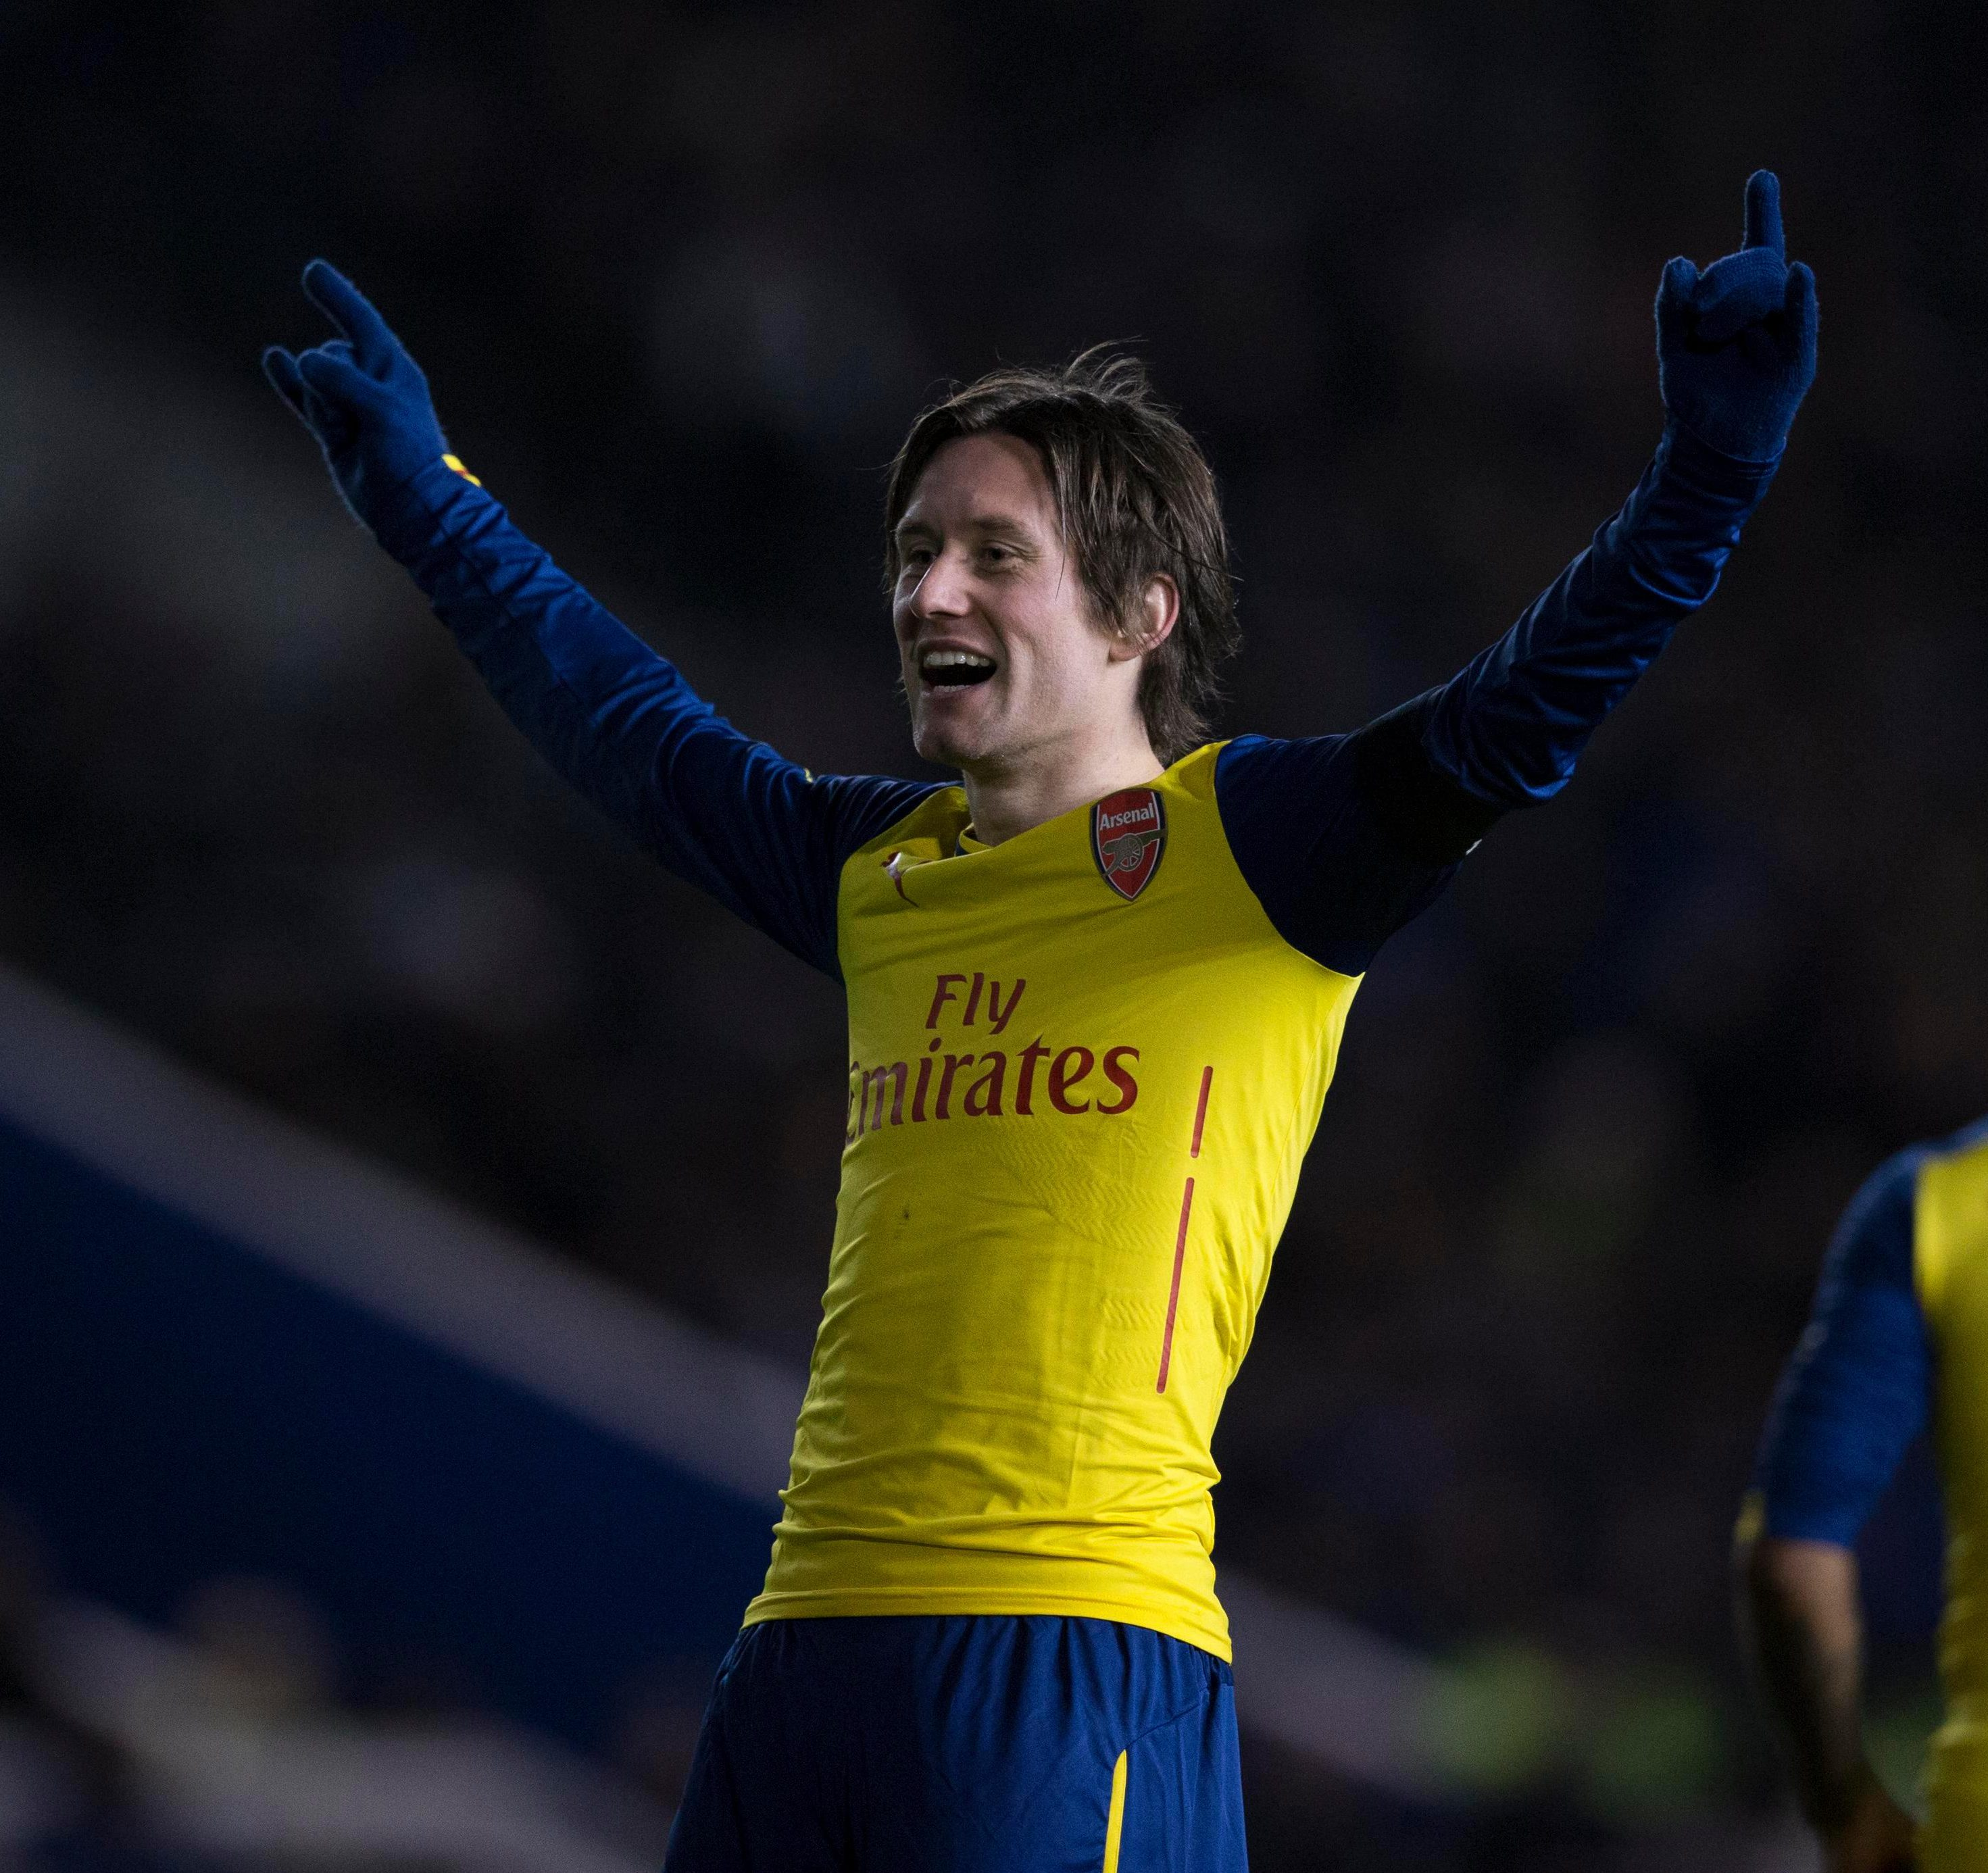 Rosicky endured an injury-stricken spell with the Gunners